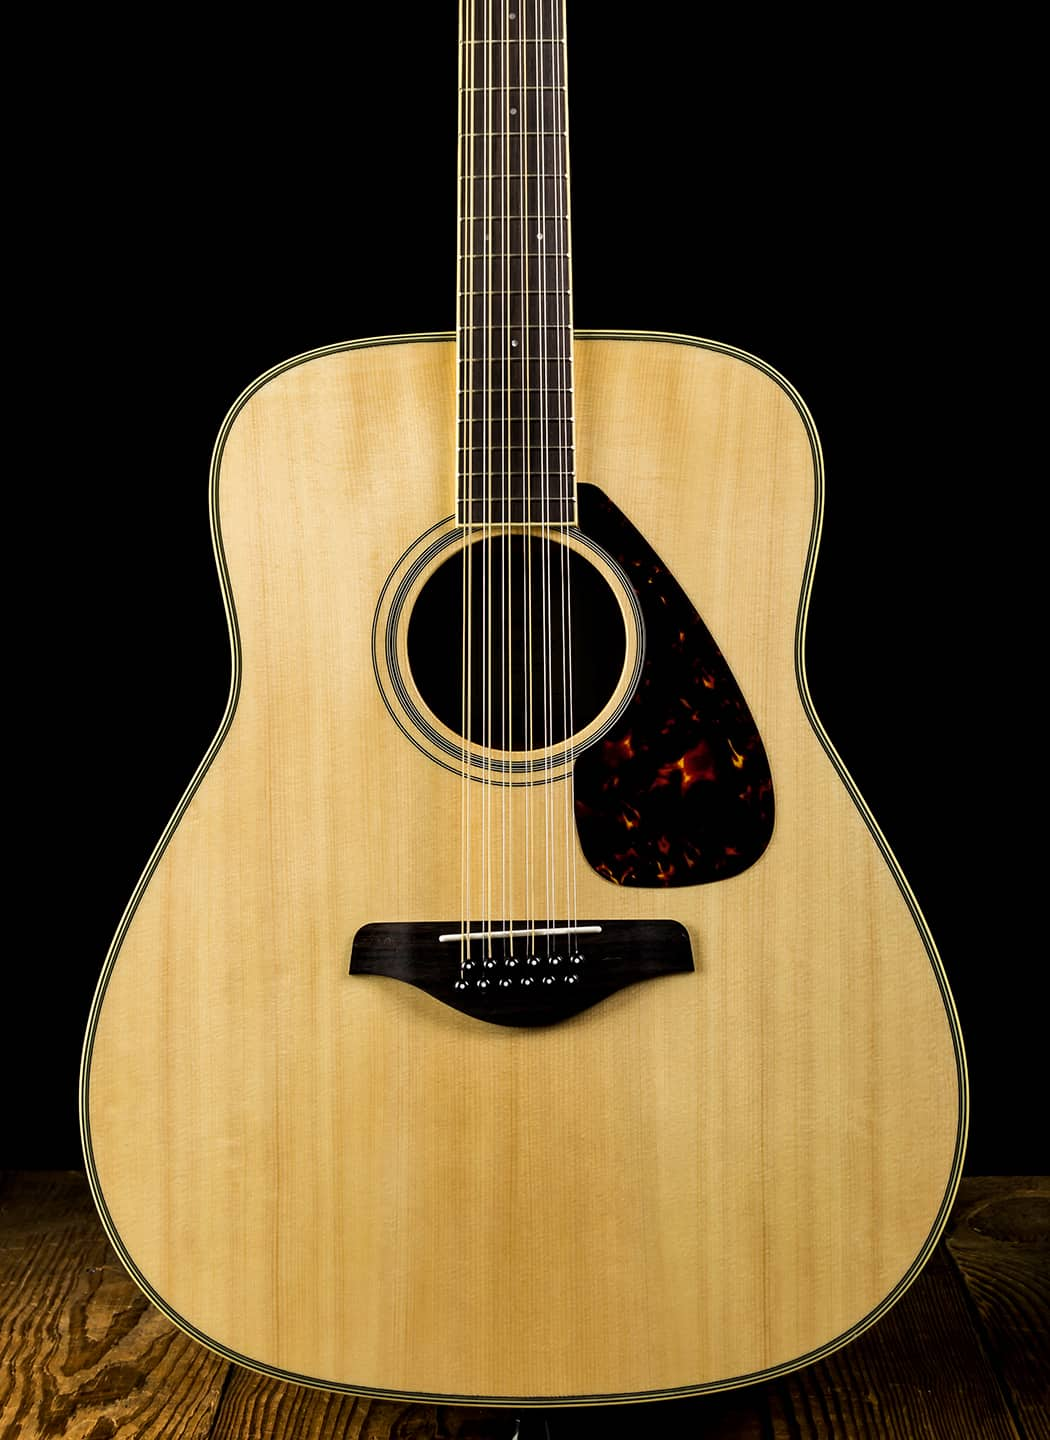 Yamaha fg820 12 acoustic guitar free shipping reverb for Yamaha fg820 review